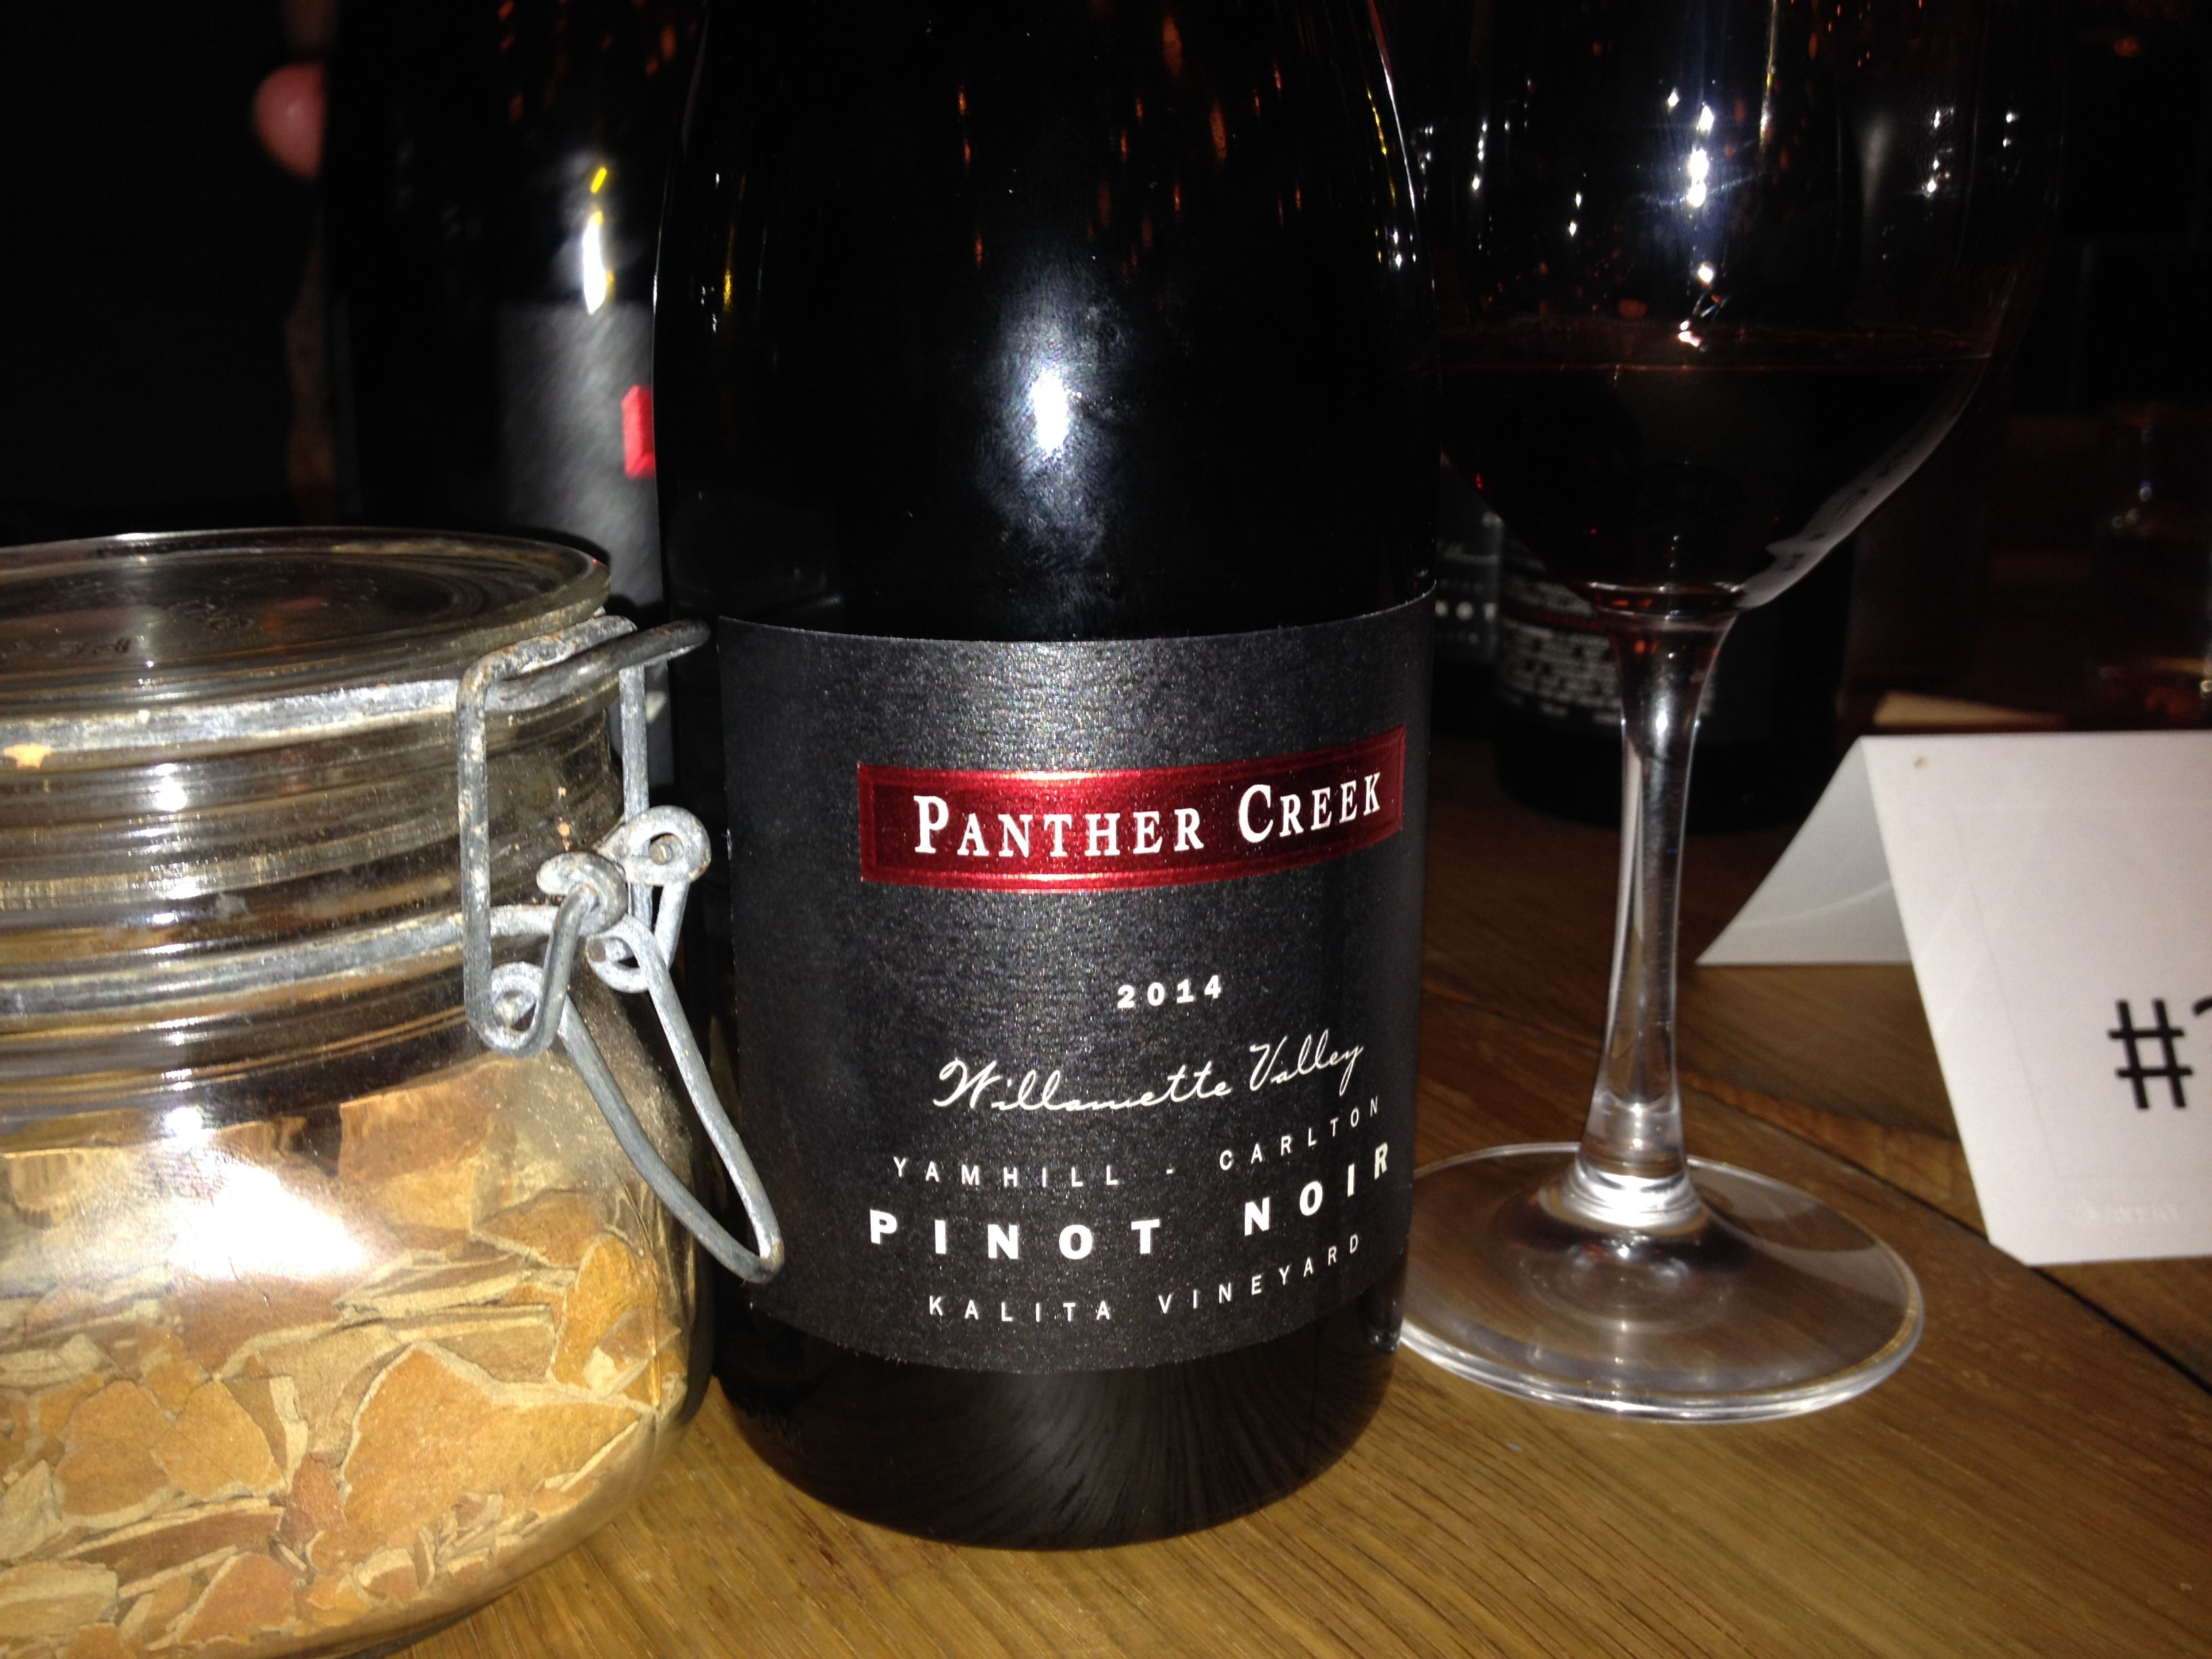 & Pinot and Oregonu0027s Panther Creek Cellars | jvb uncorked